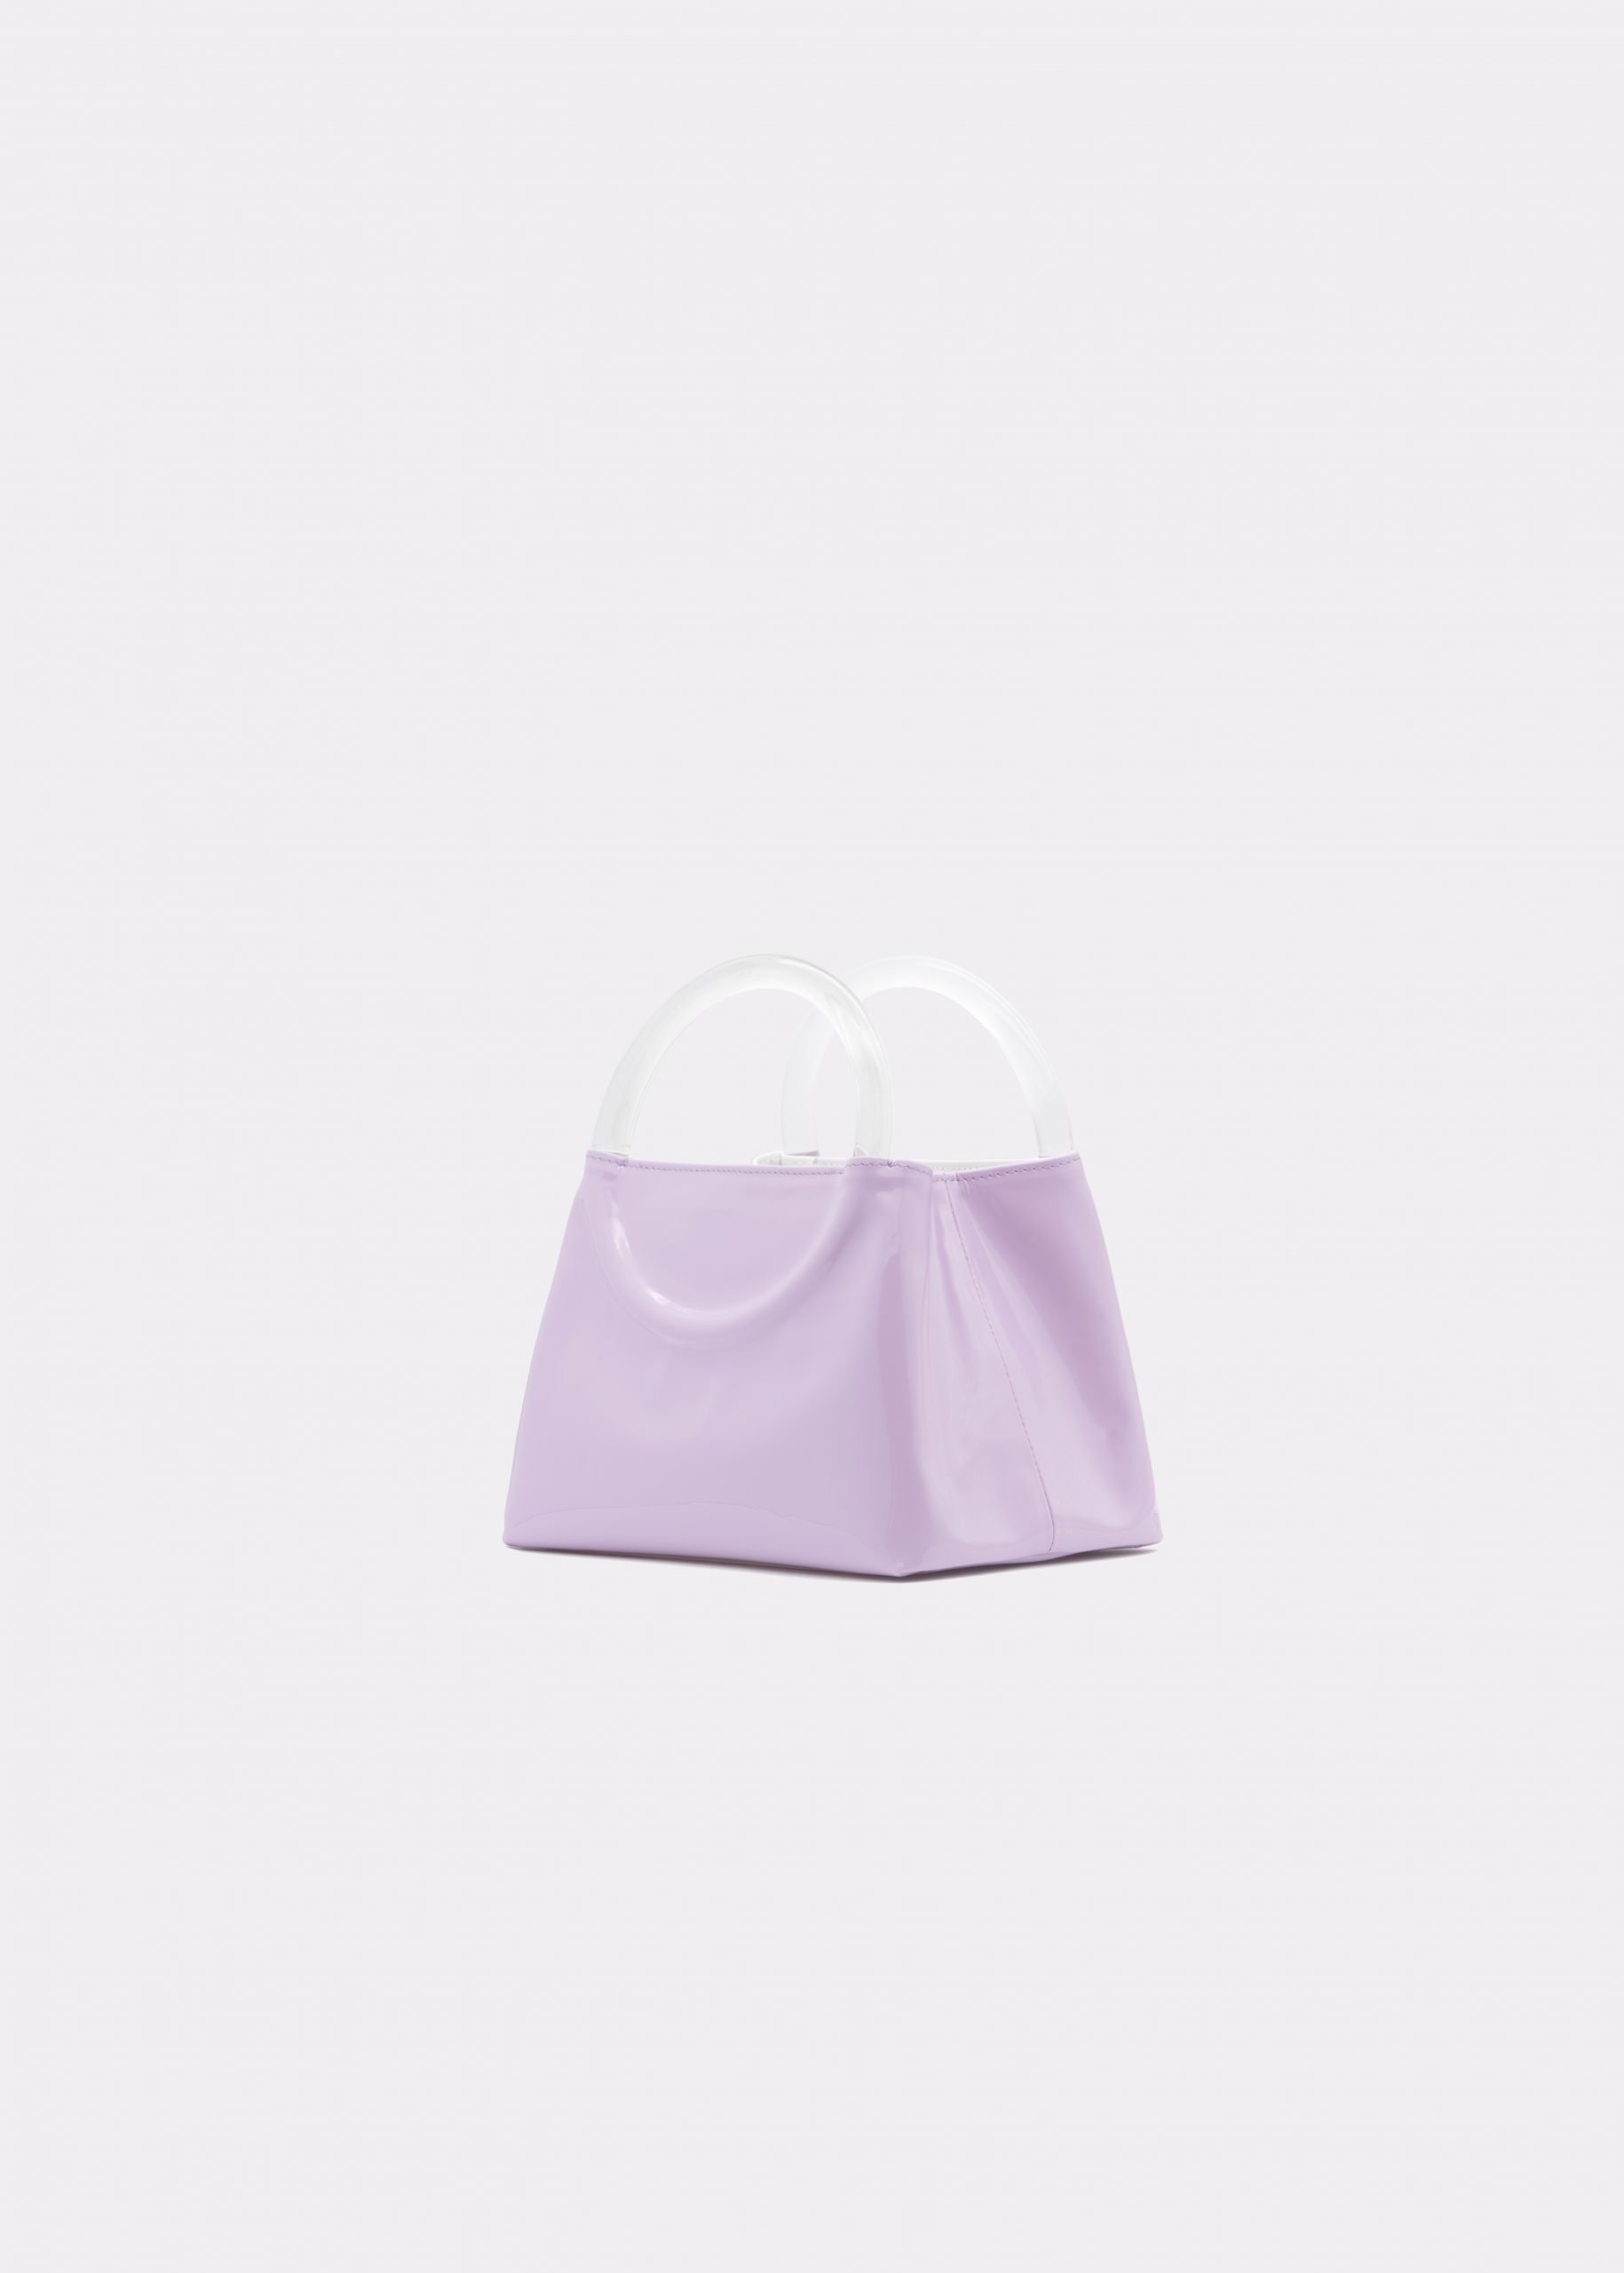 NIDO Bolla Micro bag liliac patent leather Plexy_front view